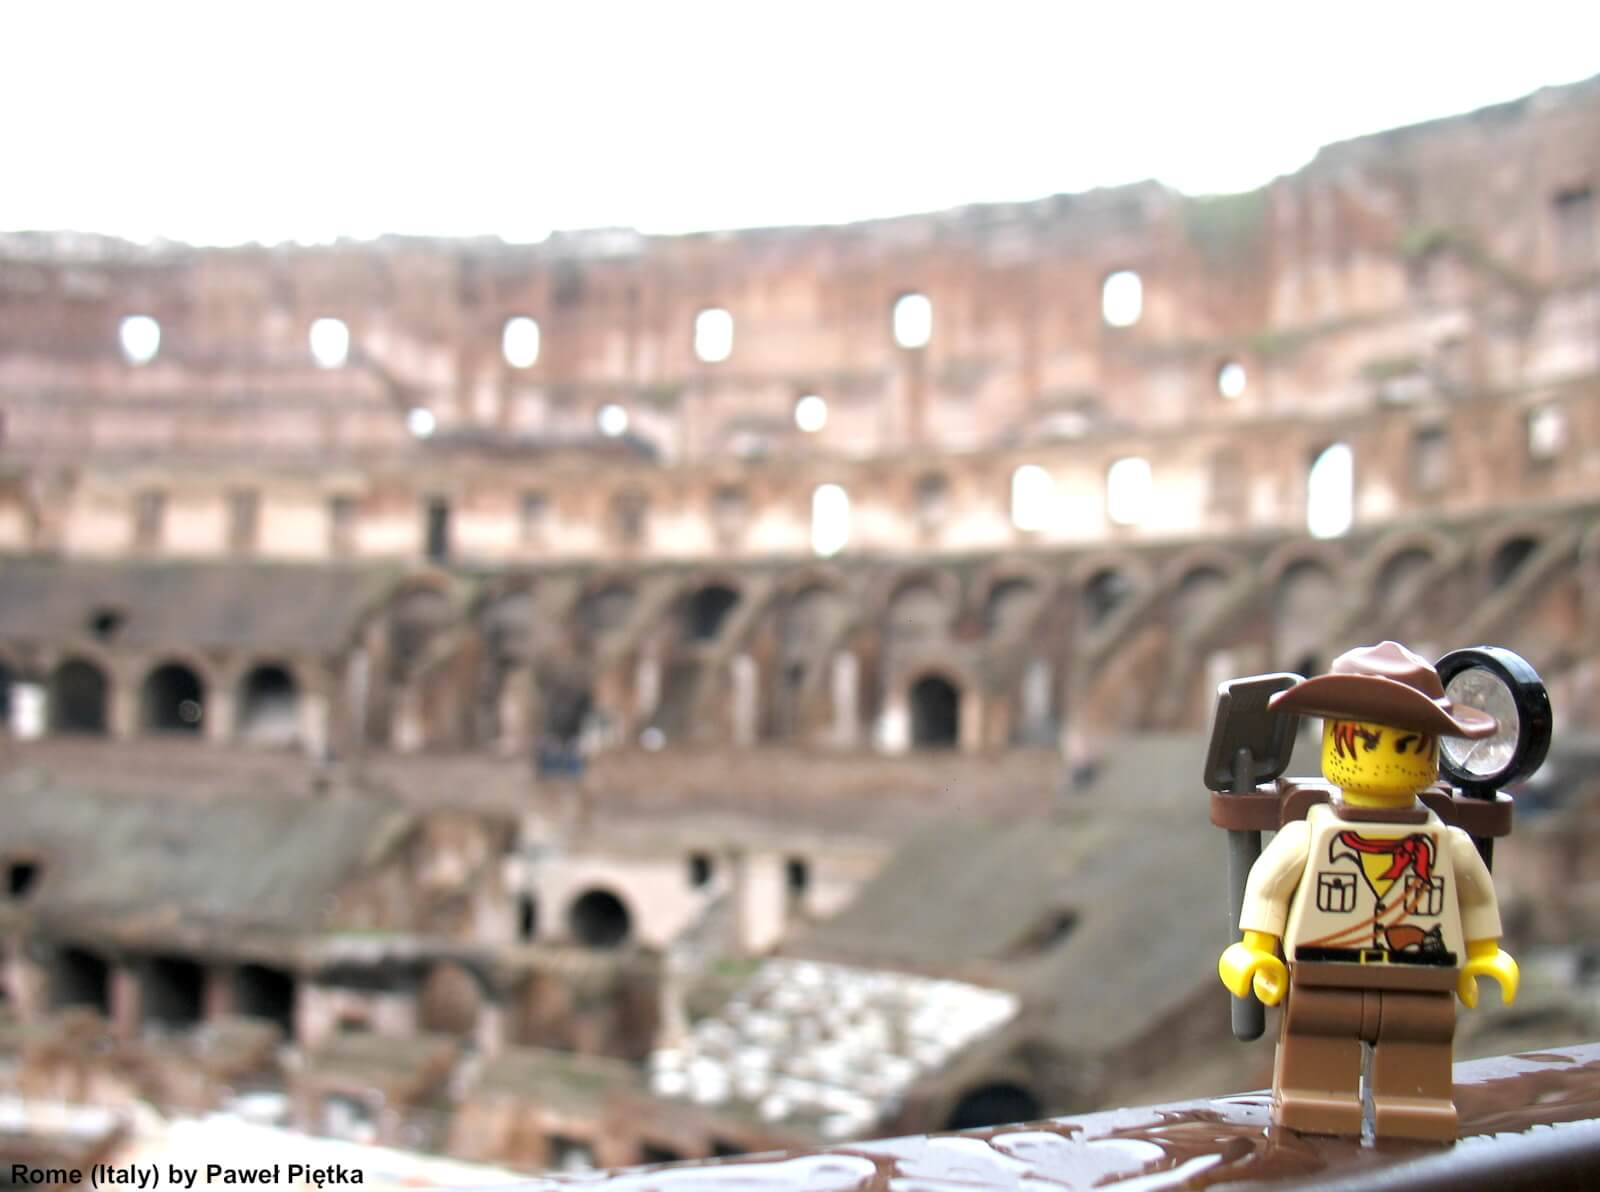 Rome (Italy) - Internal view of the Colosseum